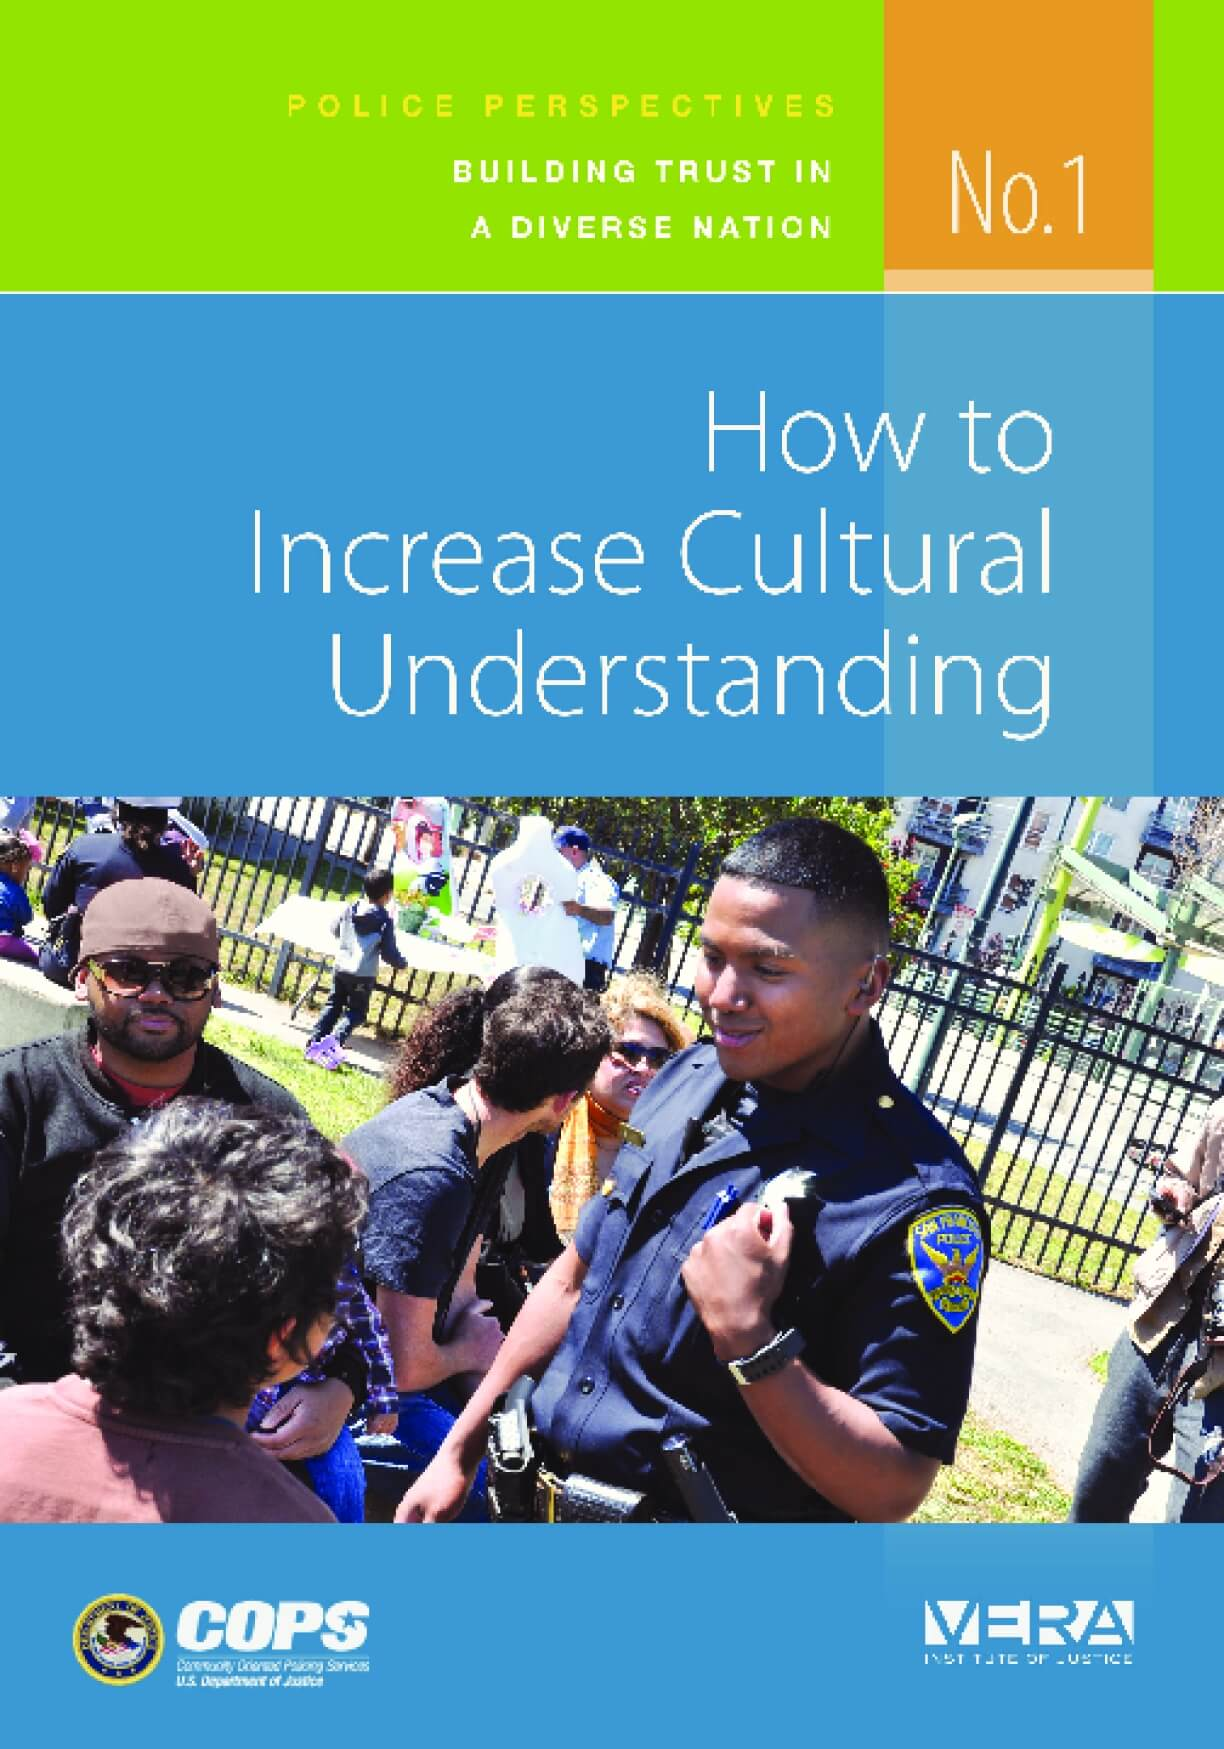 How to Increase Cultural Understanding. Police Perspectives: Building Trust in a Diverse Nation, no. 1